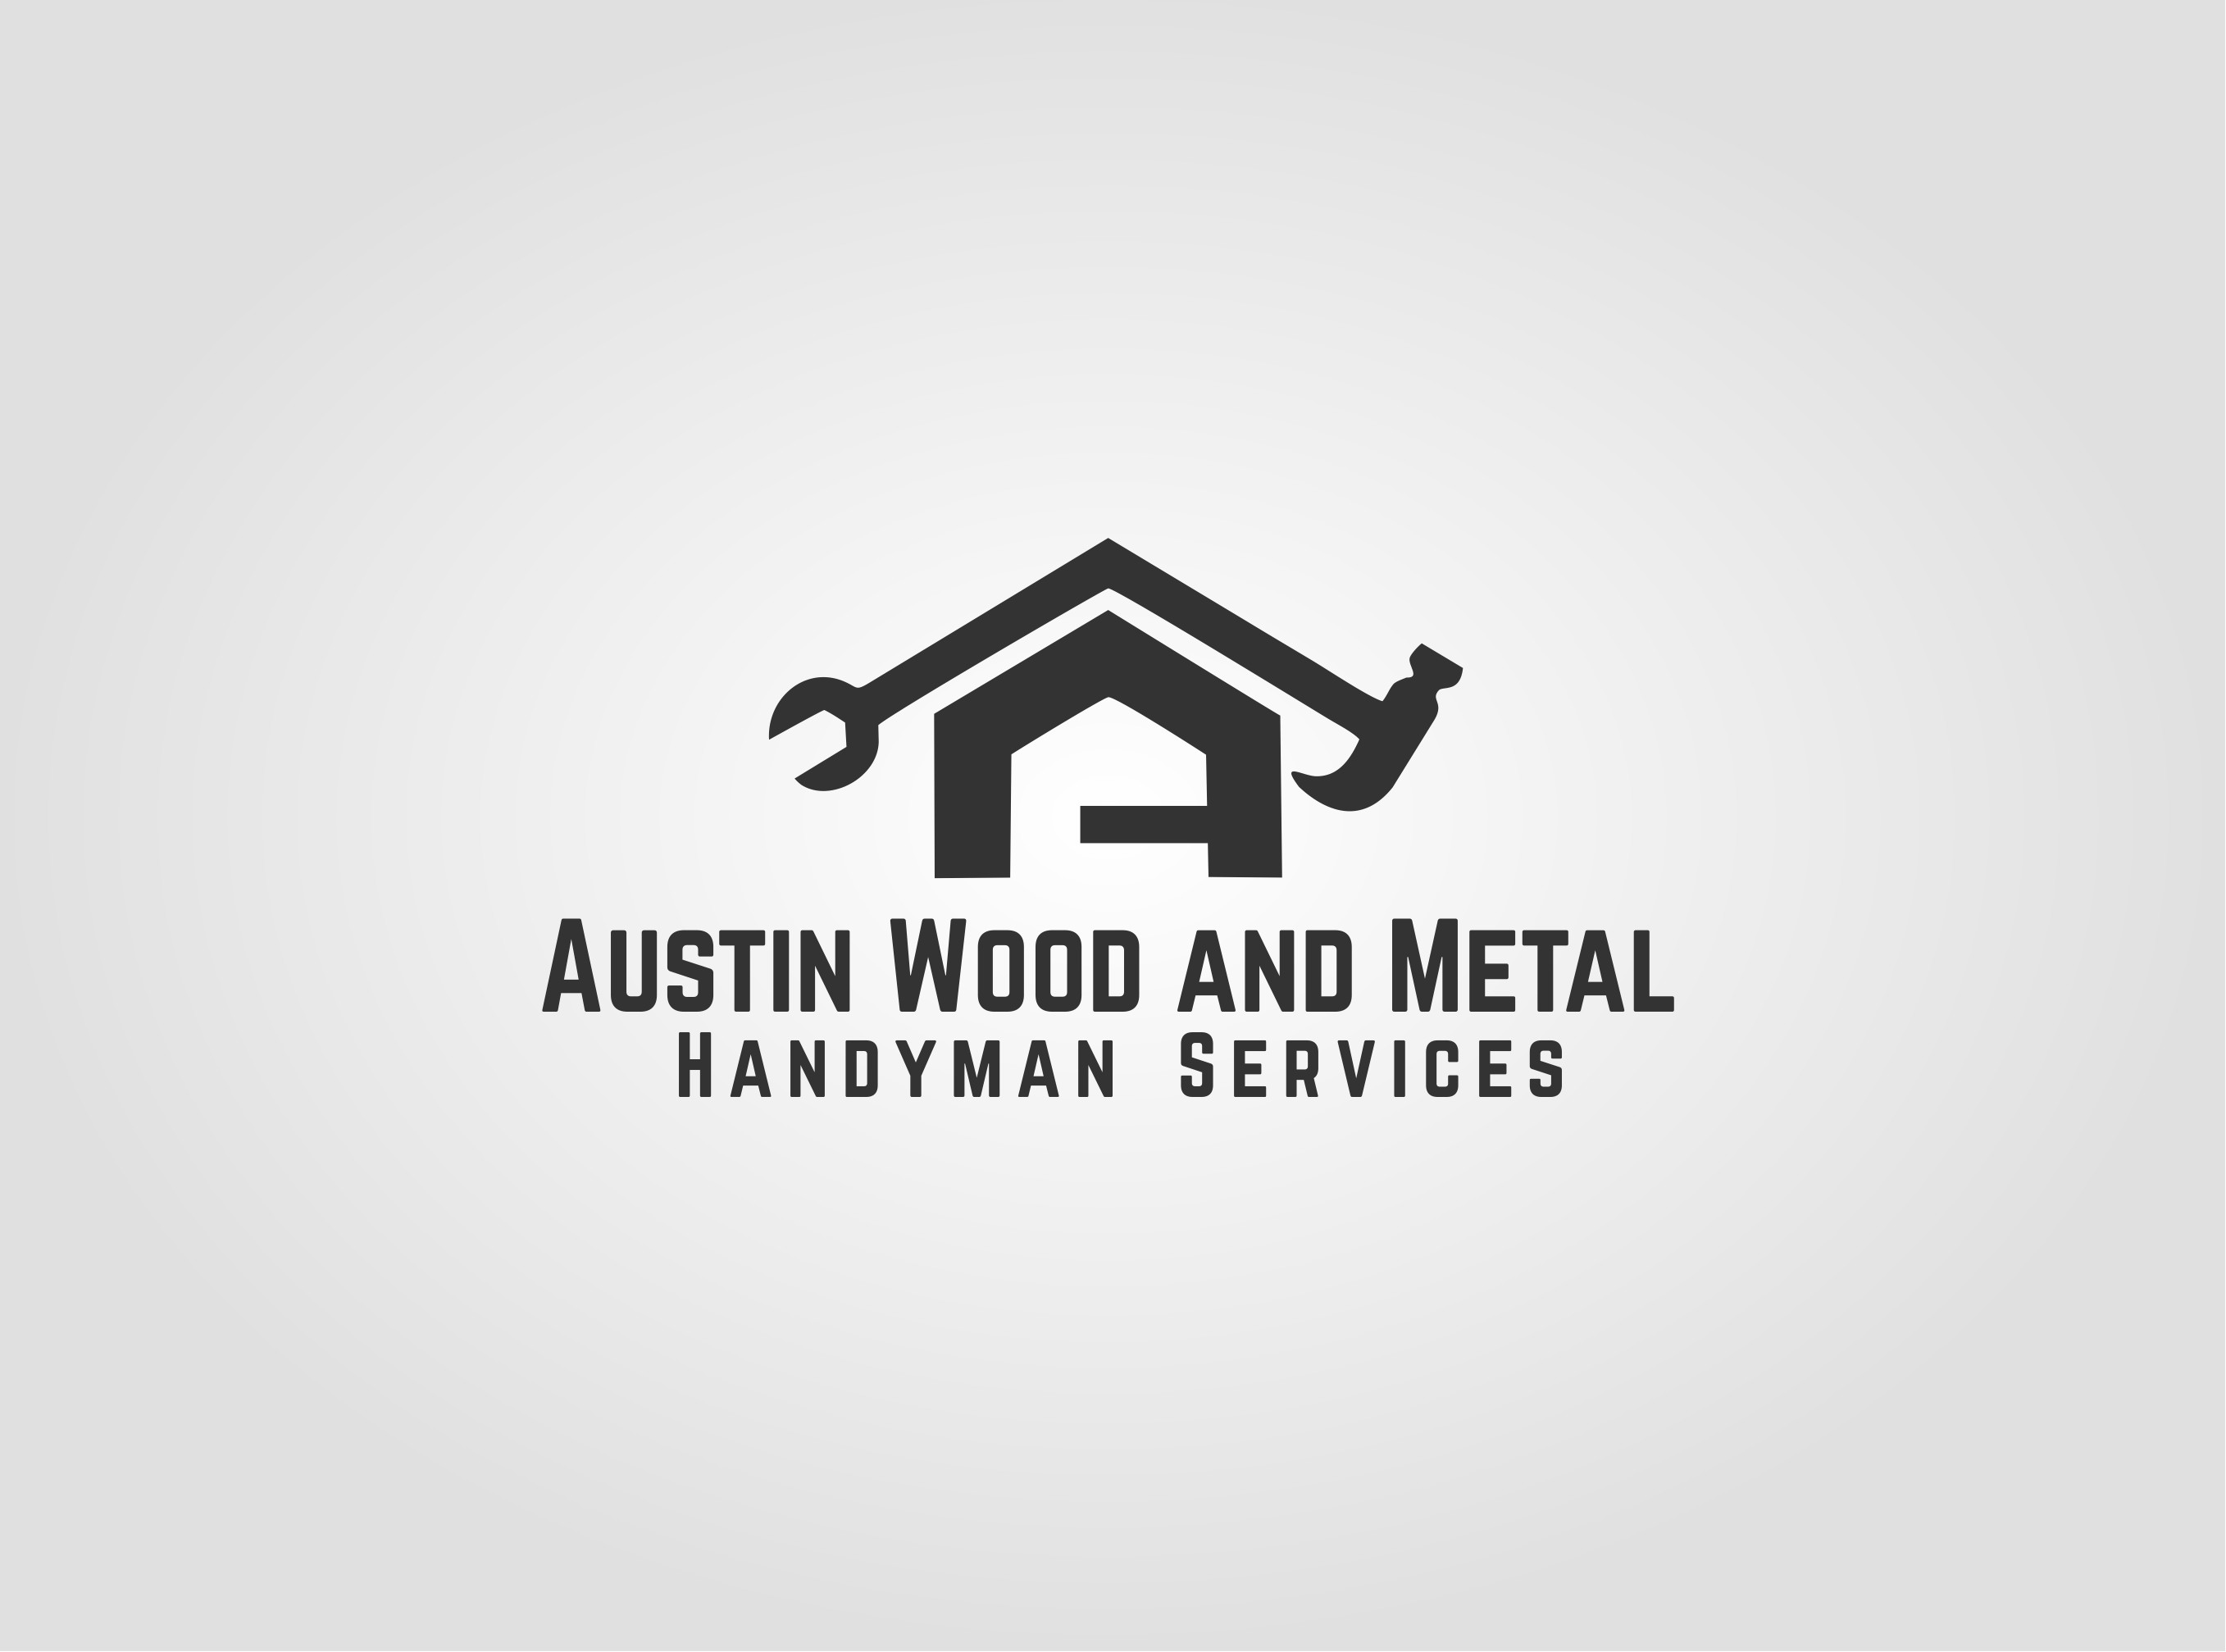 Austin Wood and Metal Handyman Services Save 50% on the first hour